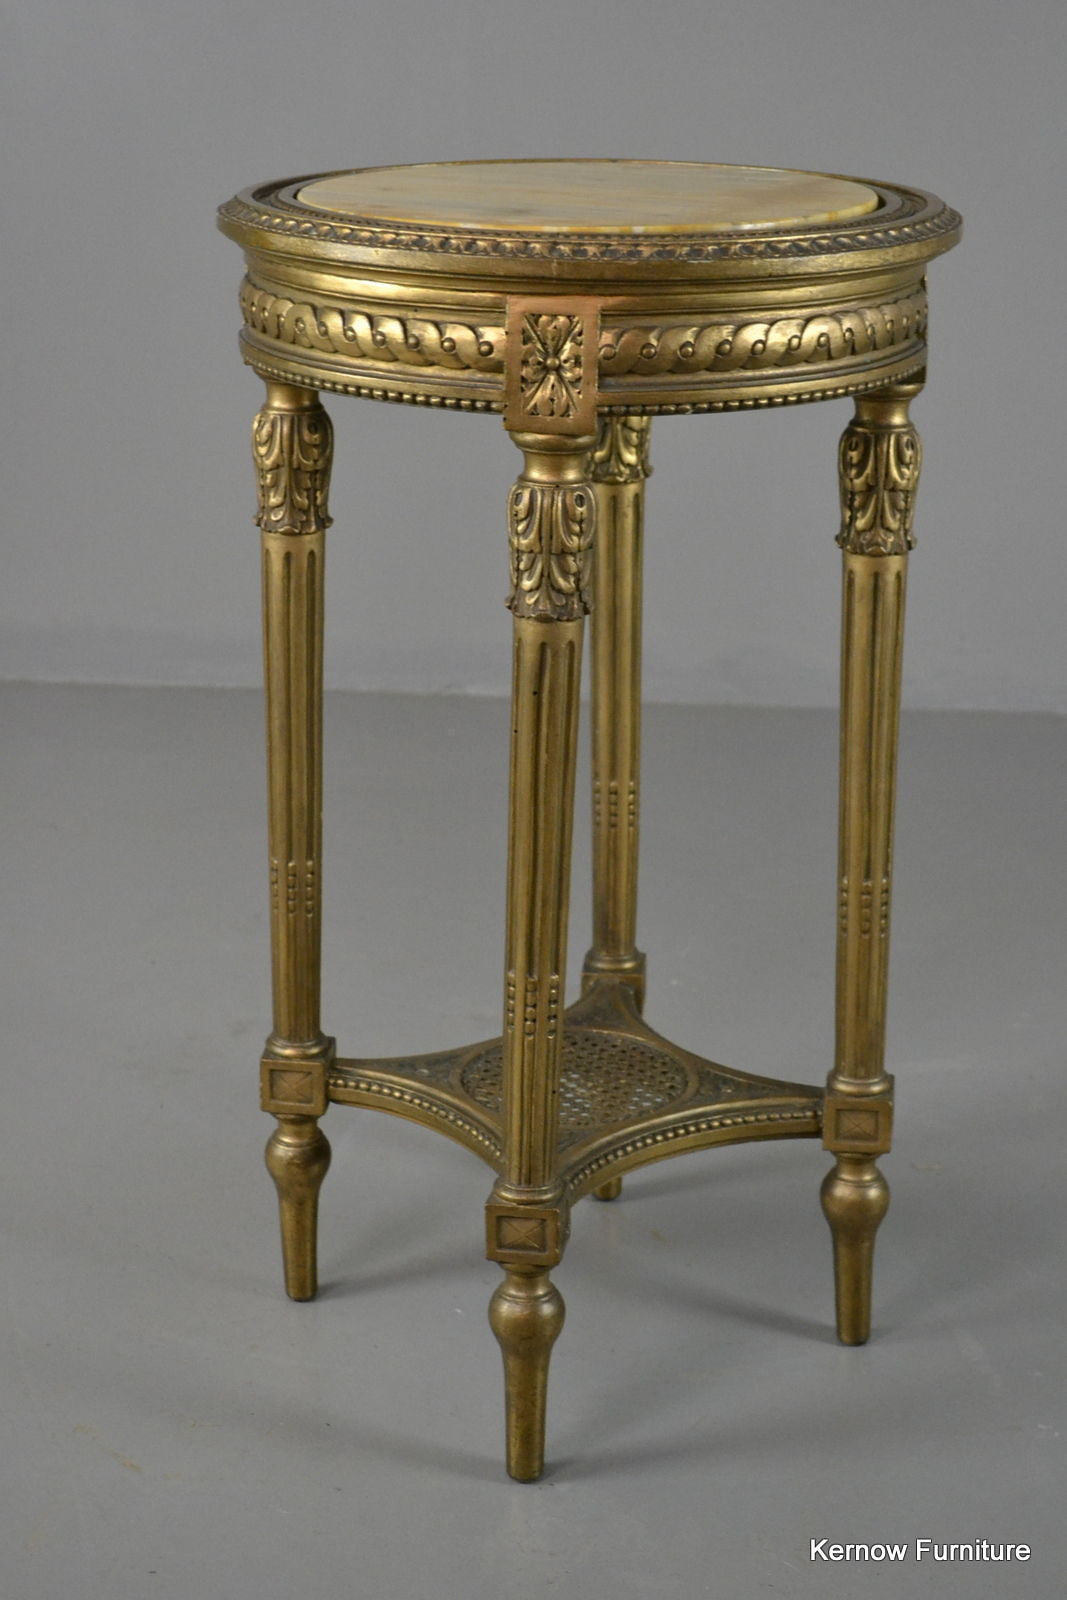 Louis XVI Style Gold U0026 Marble Top Round Side Table   Kernow Furniture 100s  Vintage,